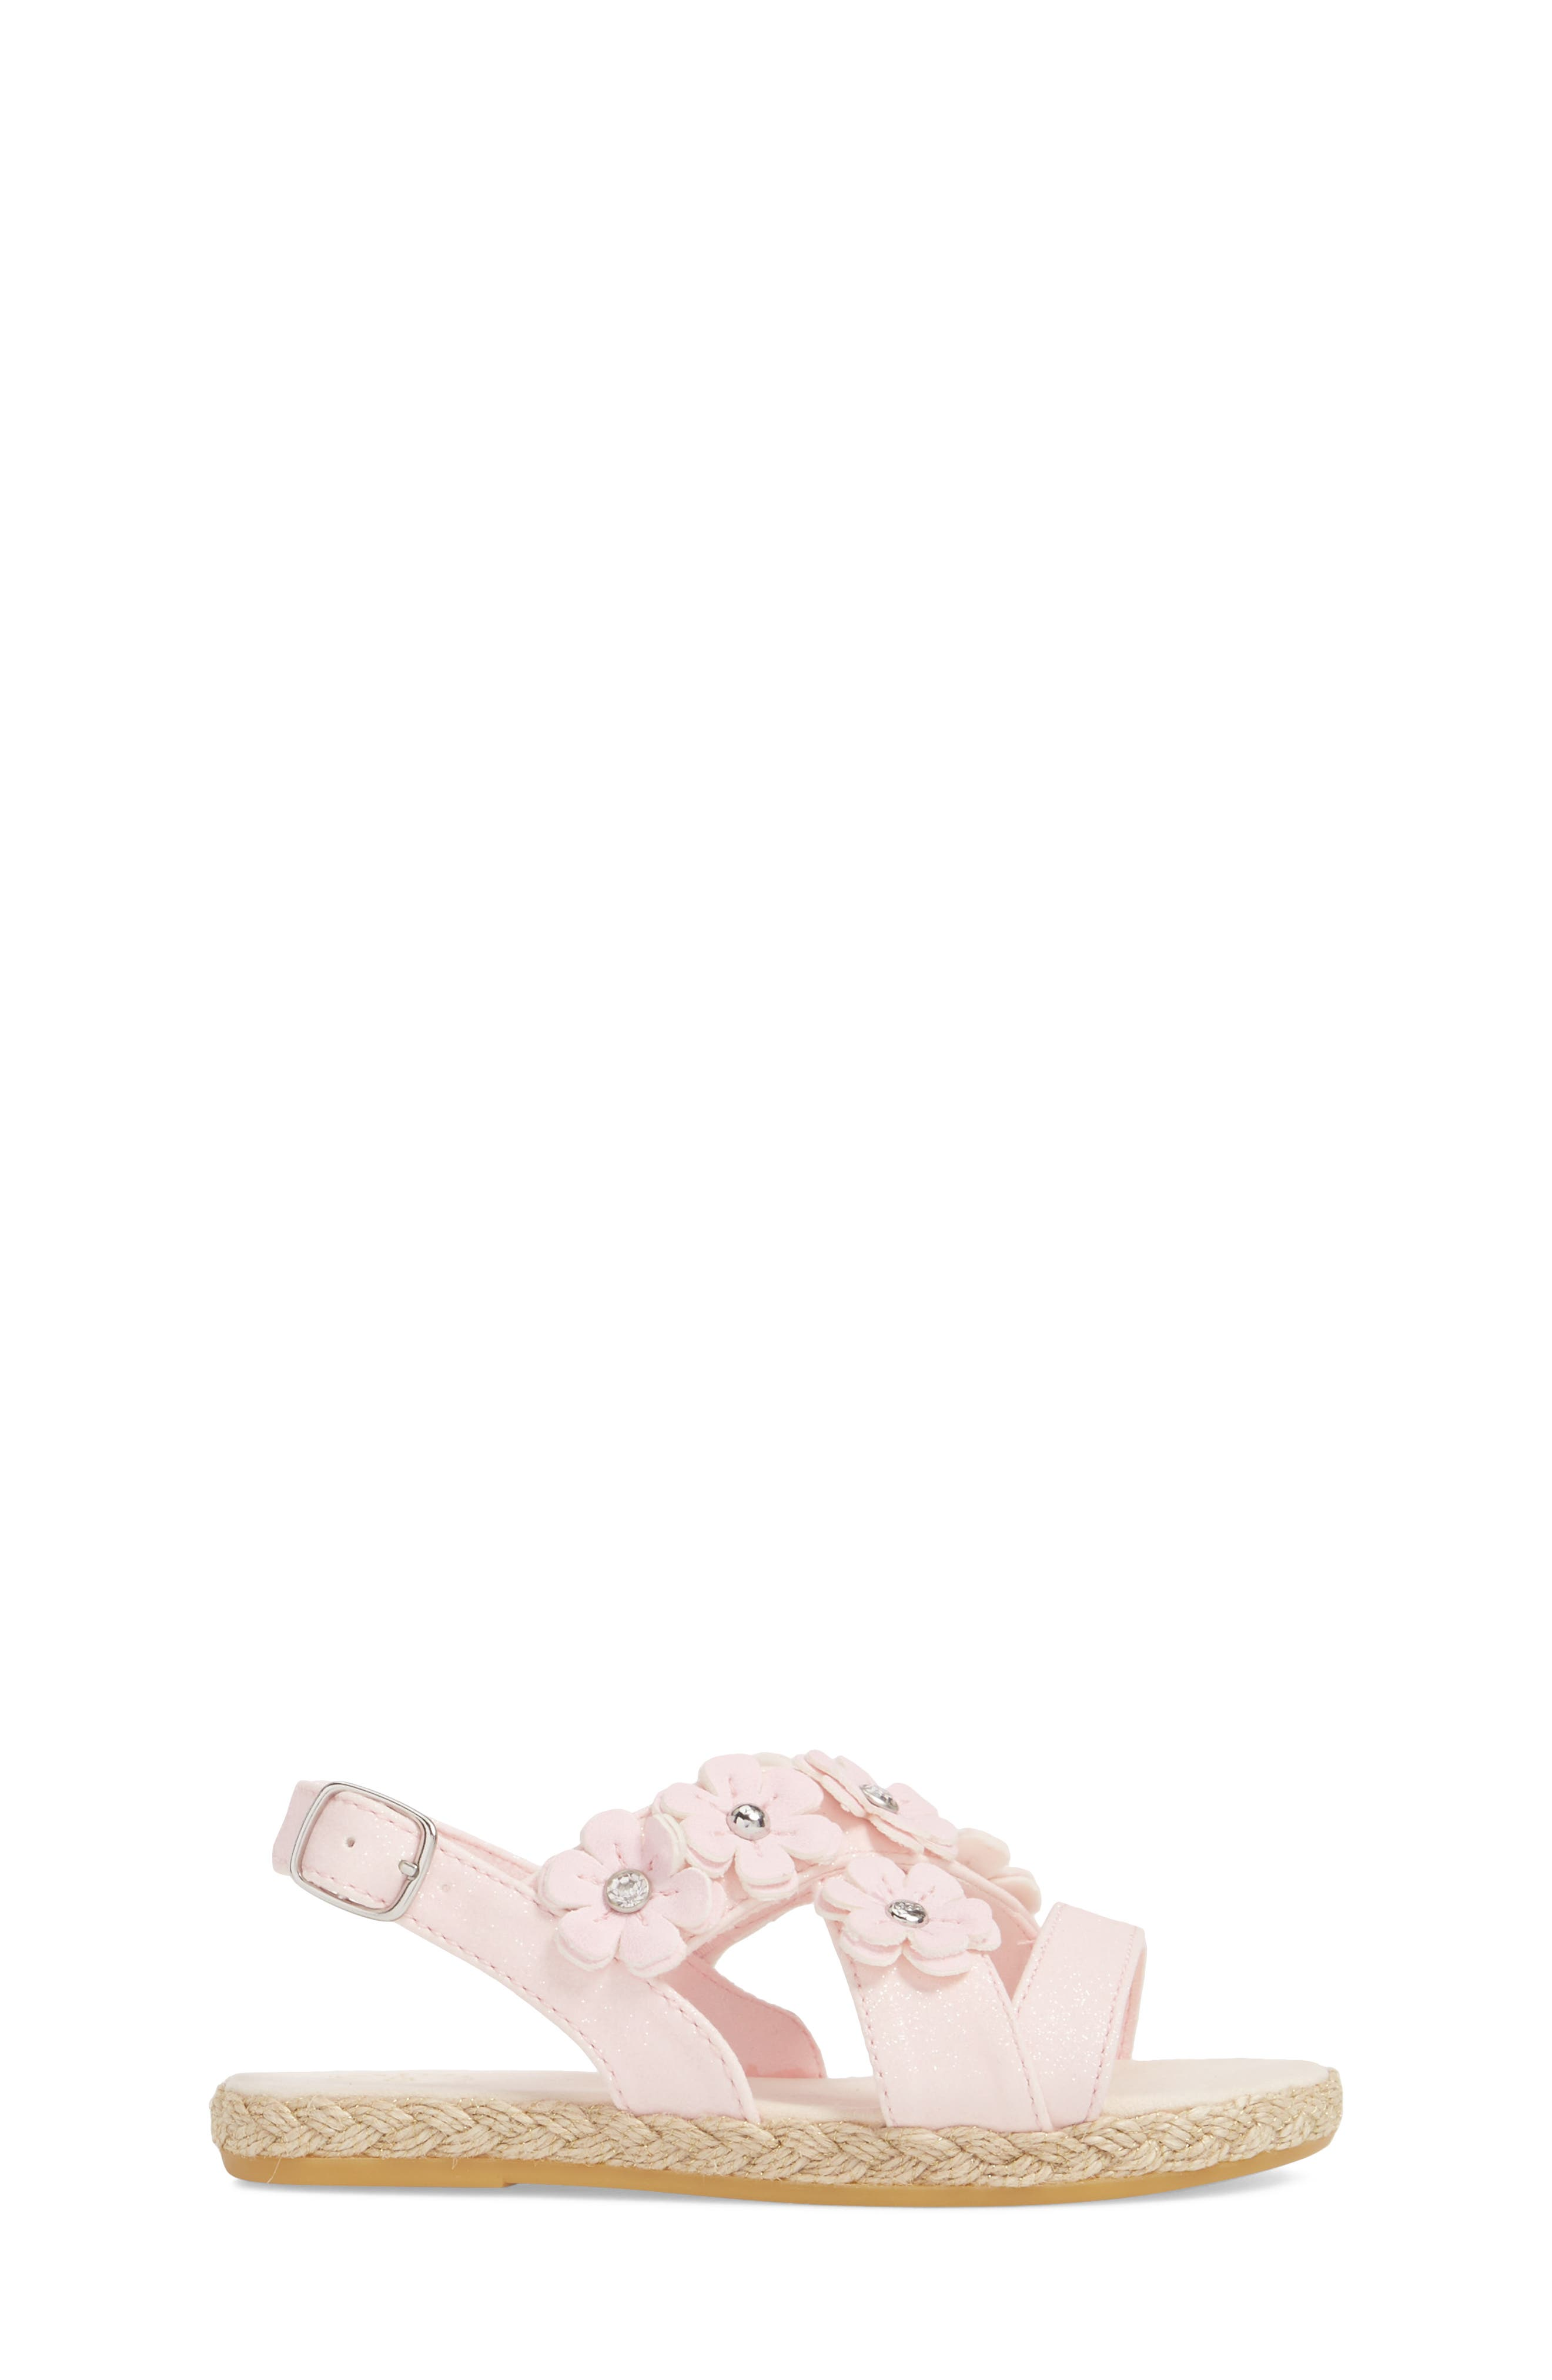 Allairey Sparkles Espadrille Sandal,                             Alternate thumbnail 3, color,                             SEASHELL PINK